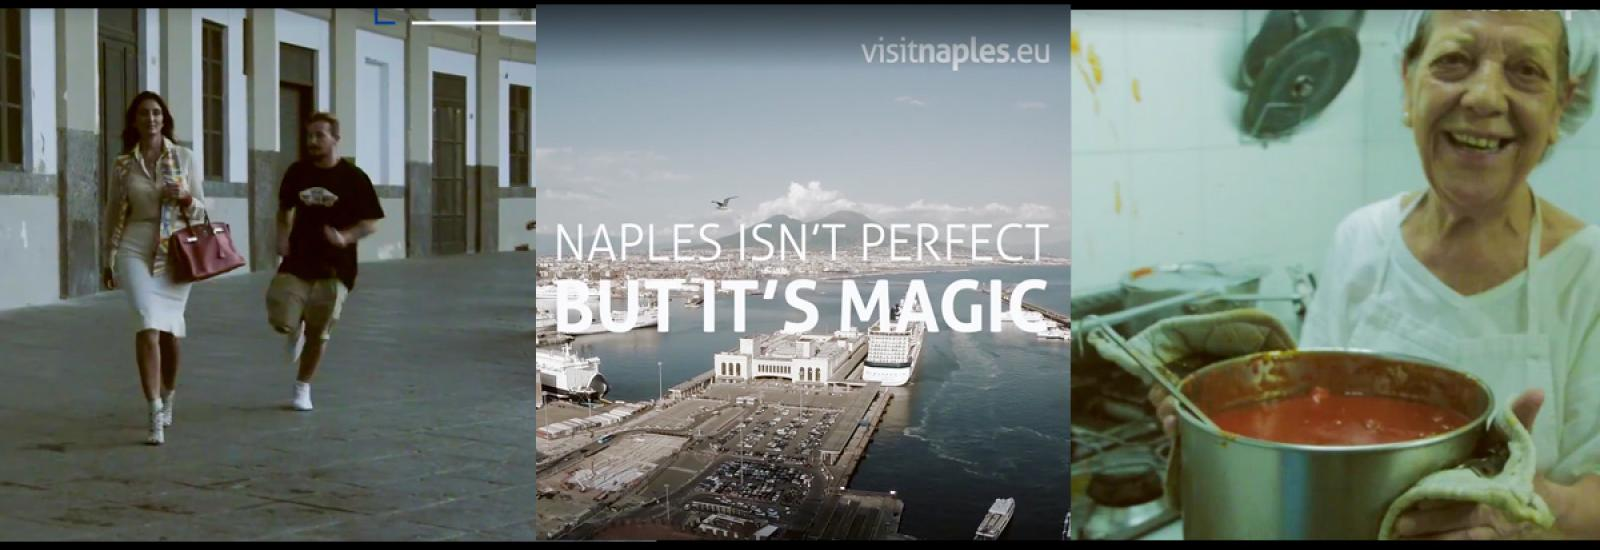 Napoli isn't perfect, but it's magic